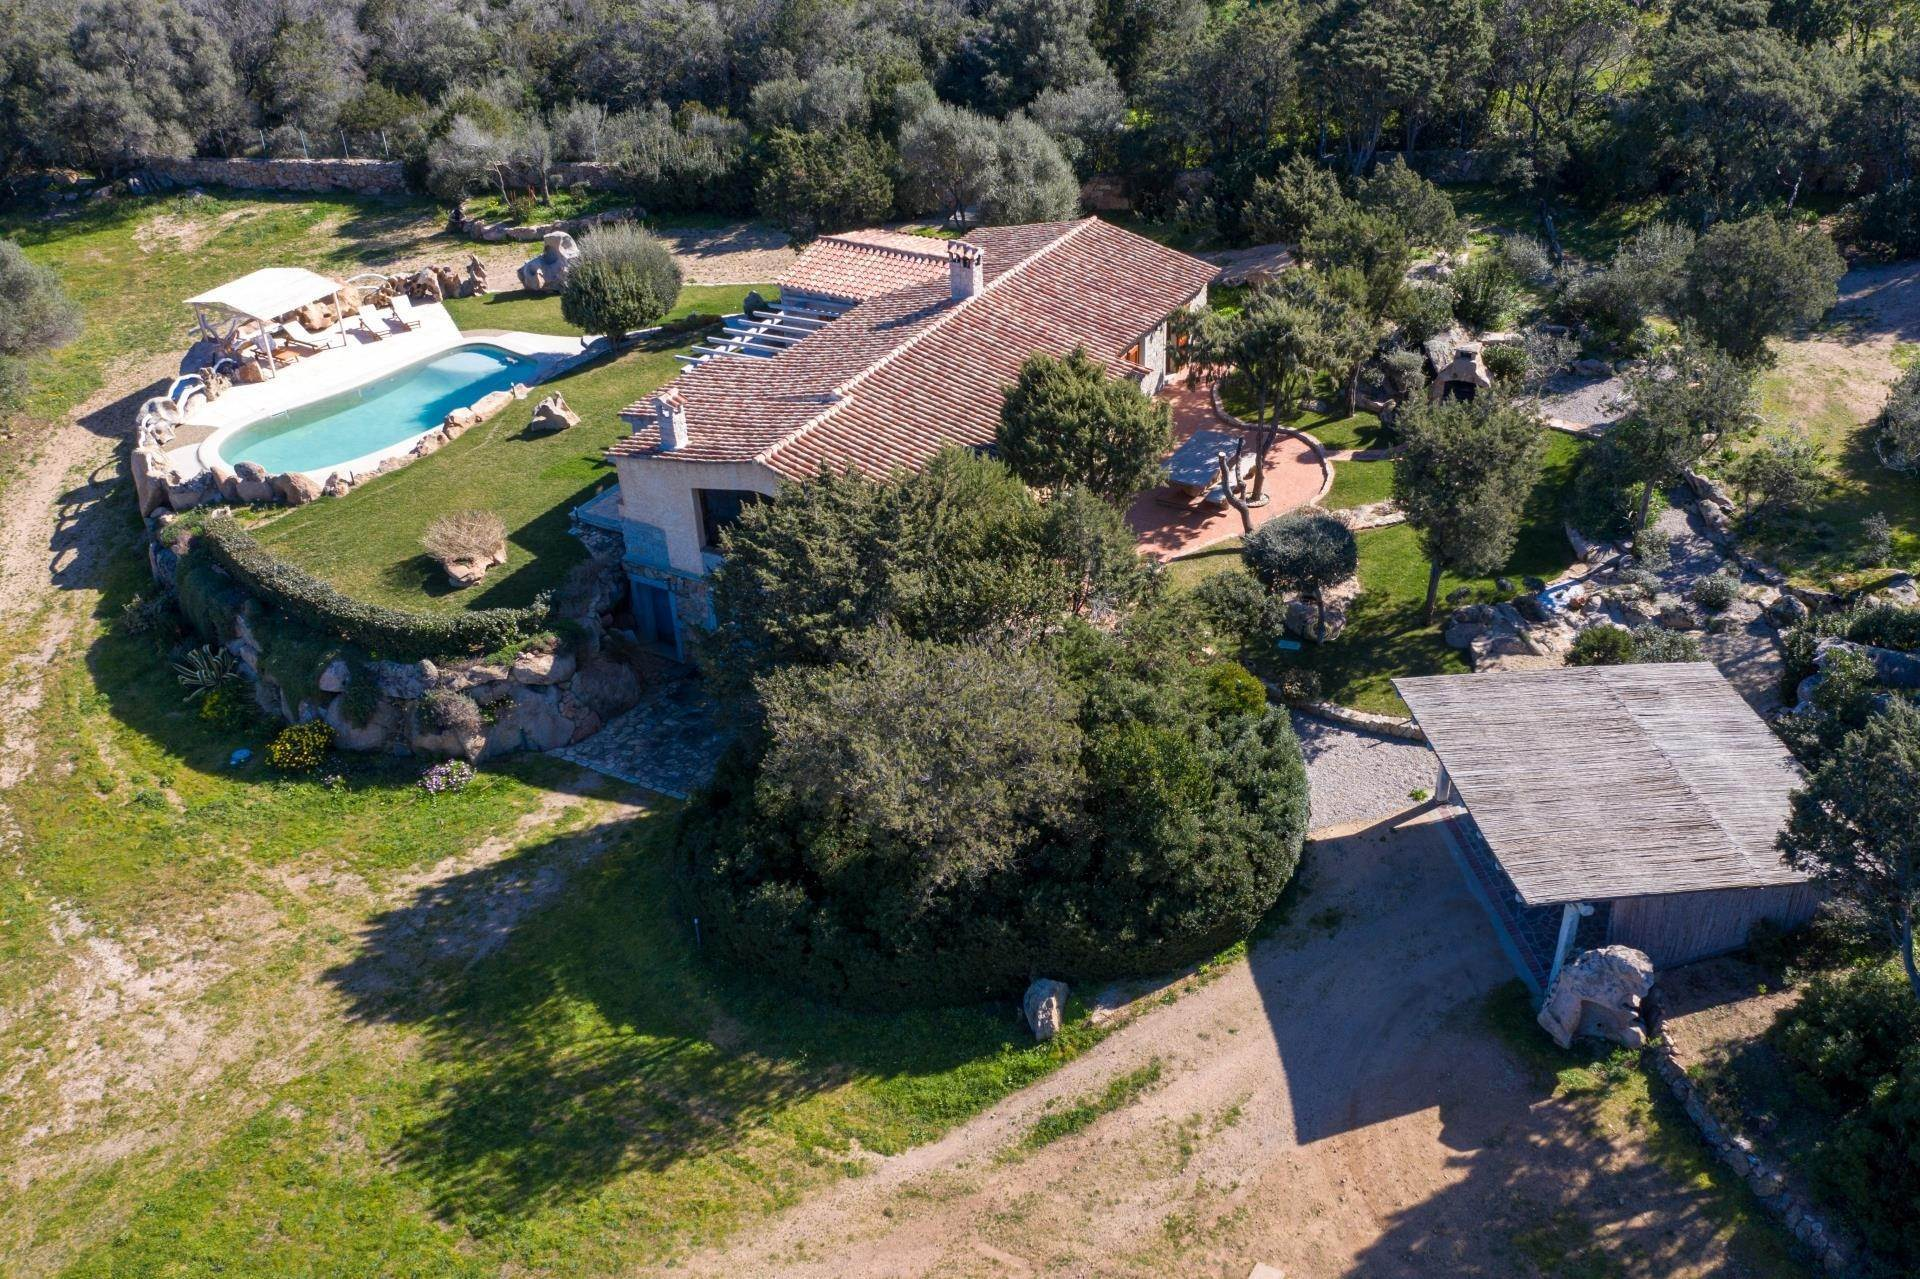 20. Villa/Townhouse for Rent at Country Villa with Pool for rent Costa Smeralda, Olbia Tempio,07021 Italy